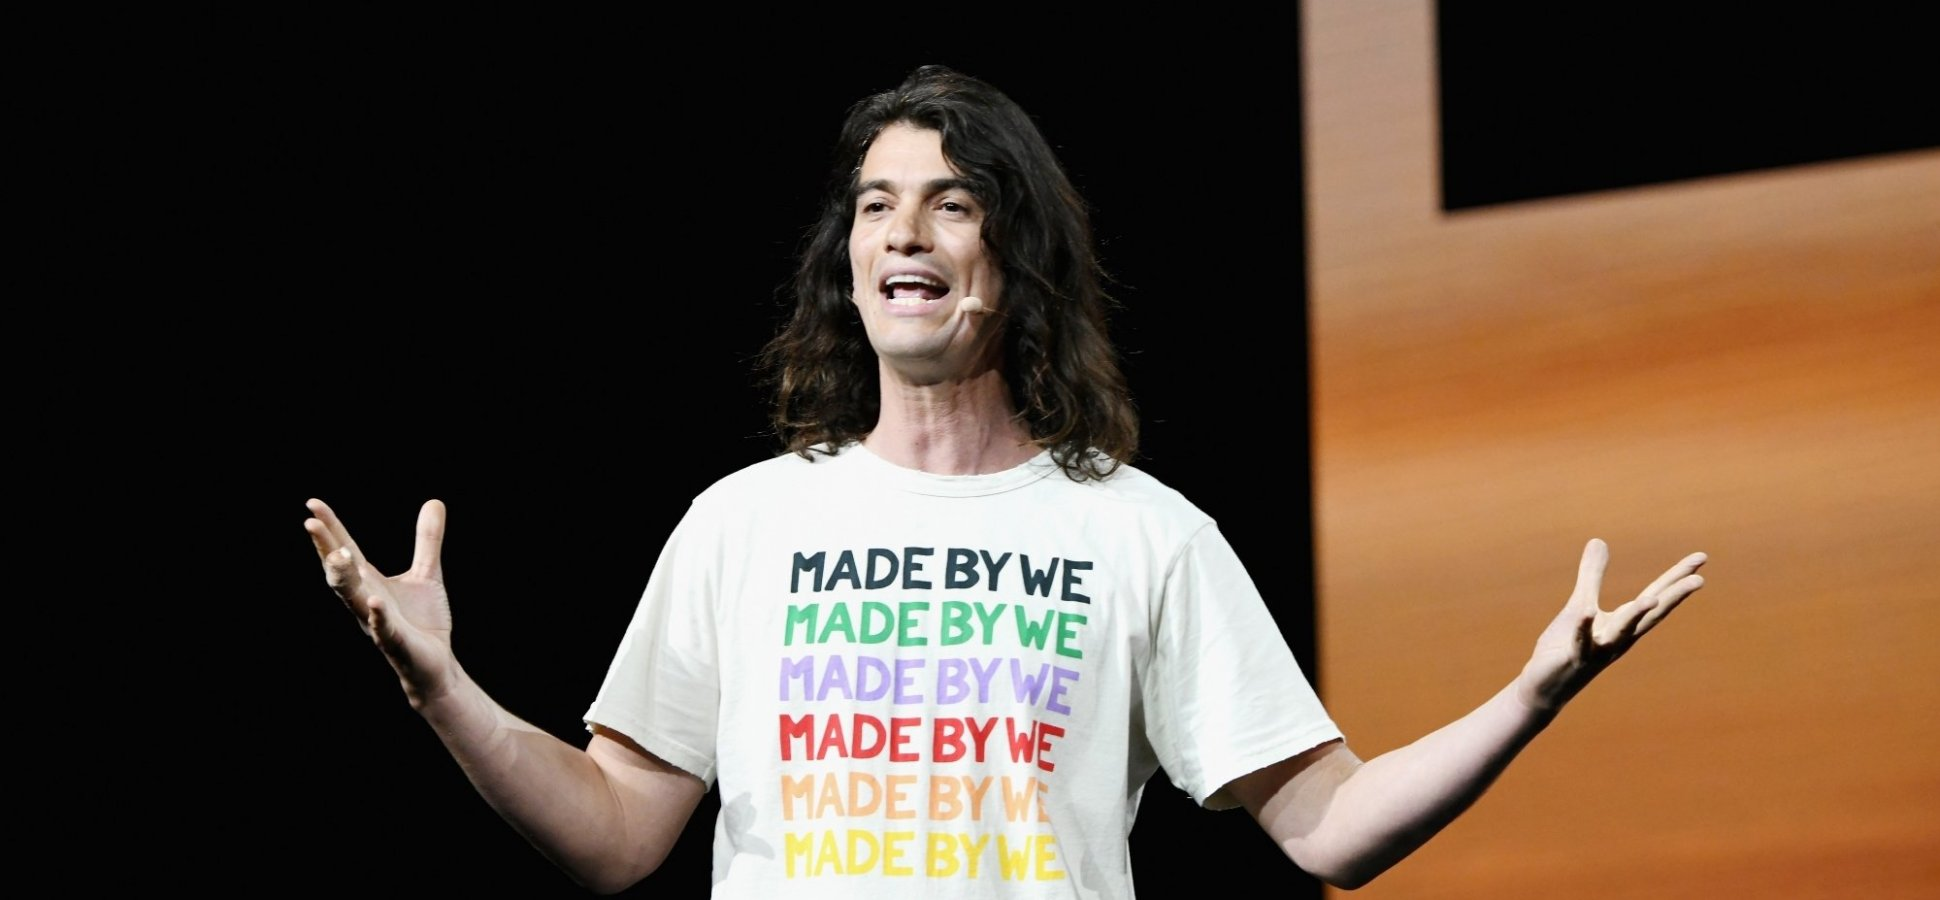 We Company CEO Adam Neumann May Seem Successful But Don't Copy His Leadership Style